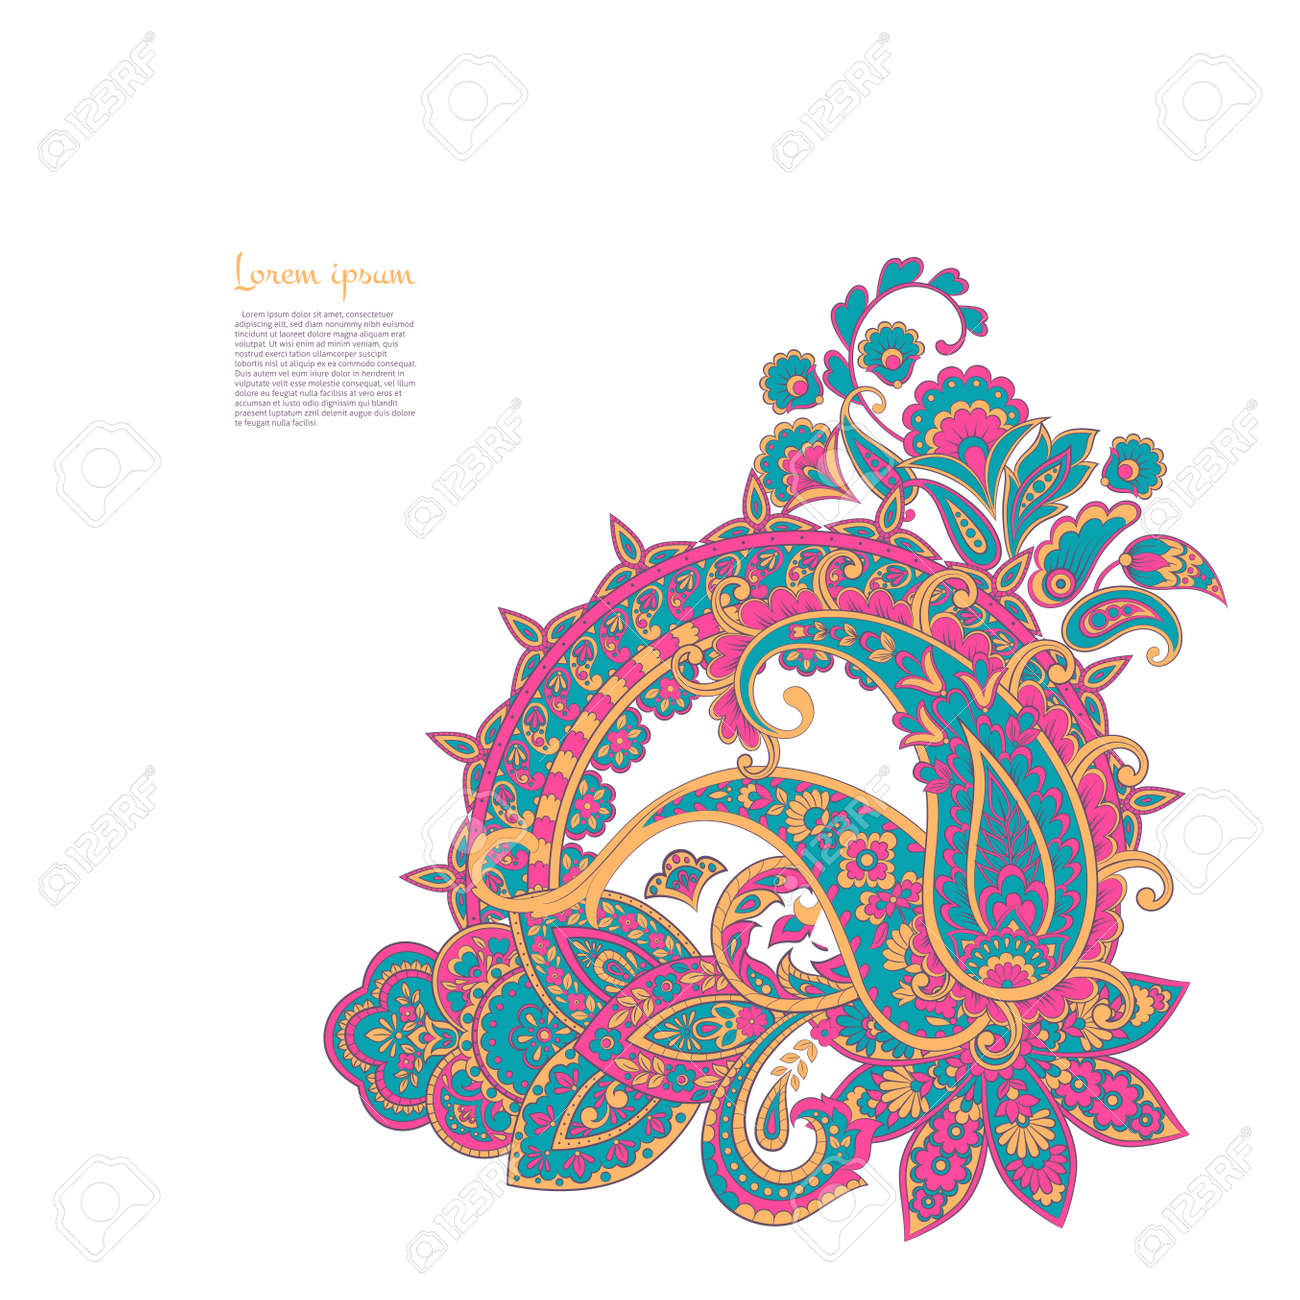 Paisley isolated pattern. Vintageillustration in Damask style - 157011512